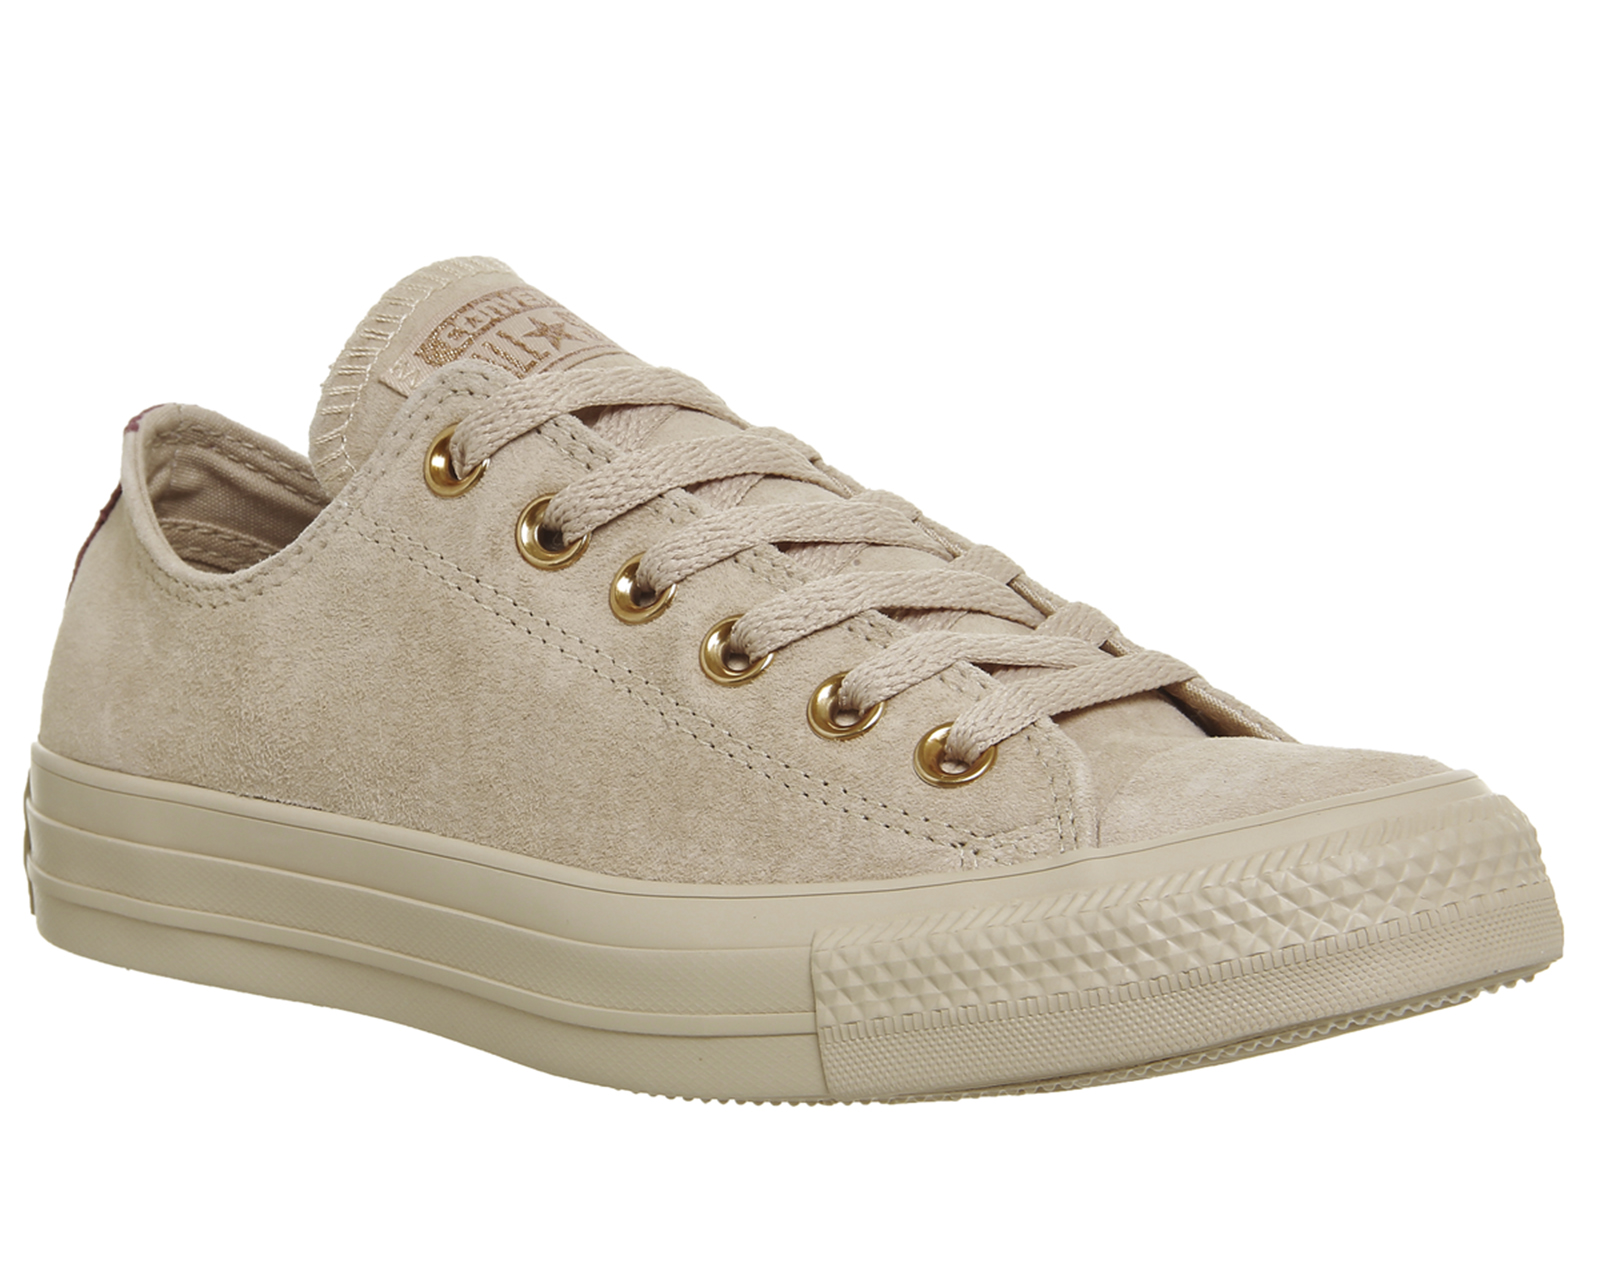 76f7918d4d5d26 Sentinel Womens Converse All Star Low Leather Bio Beige Vintage Wine Trainers  Shoes